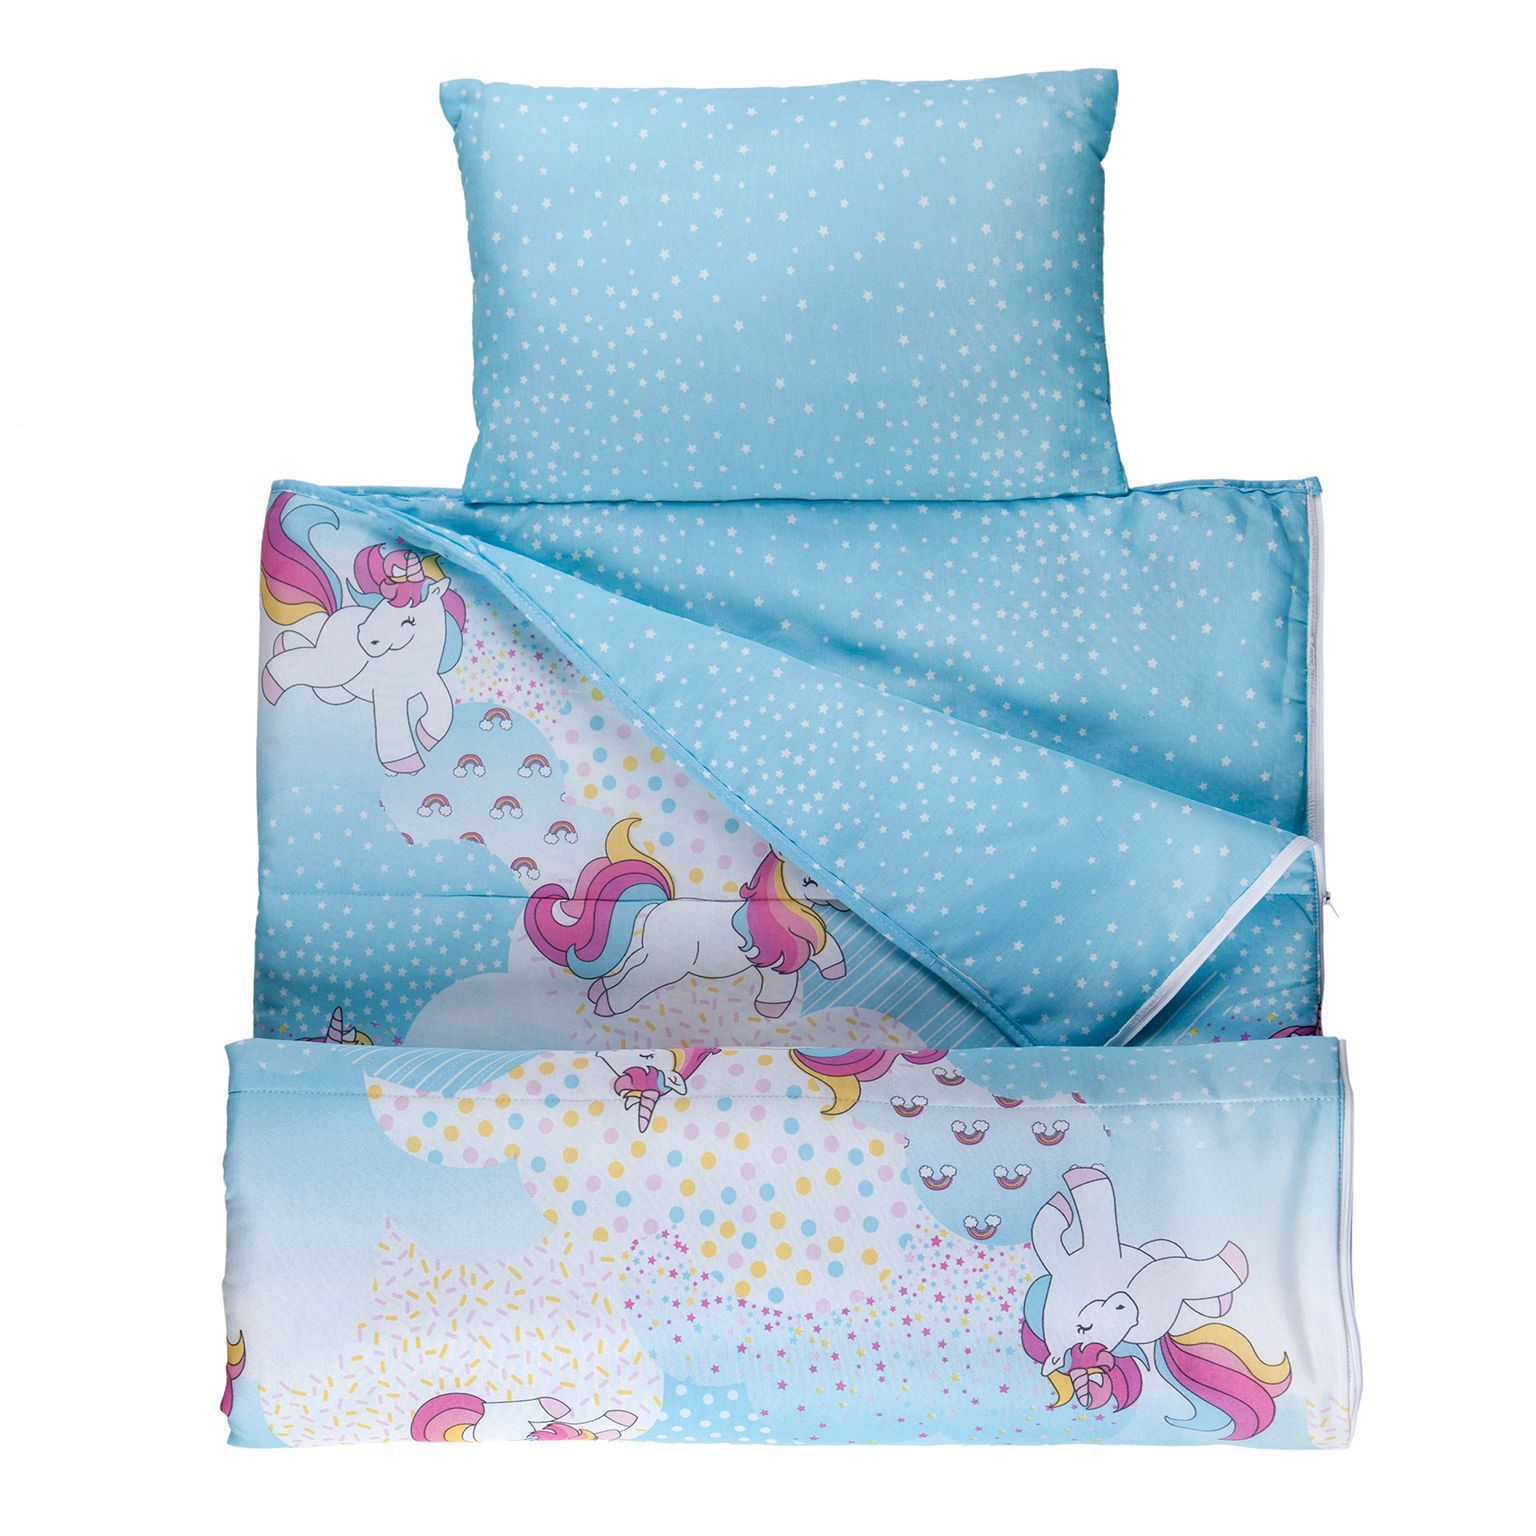 Saco de Dormir Infantil Magic Matelado